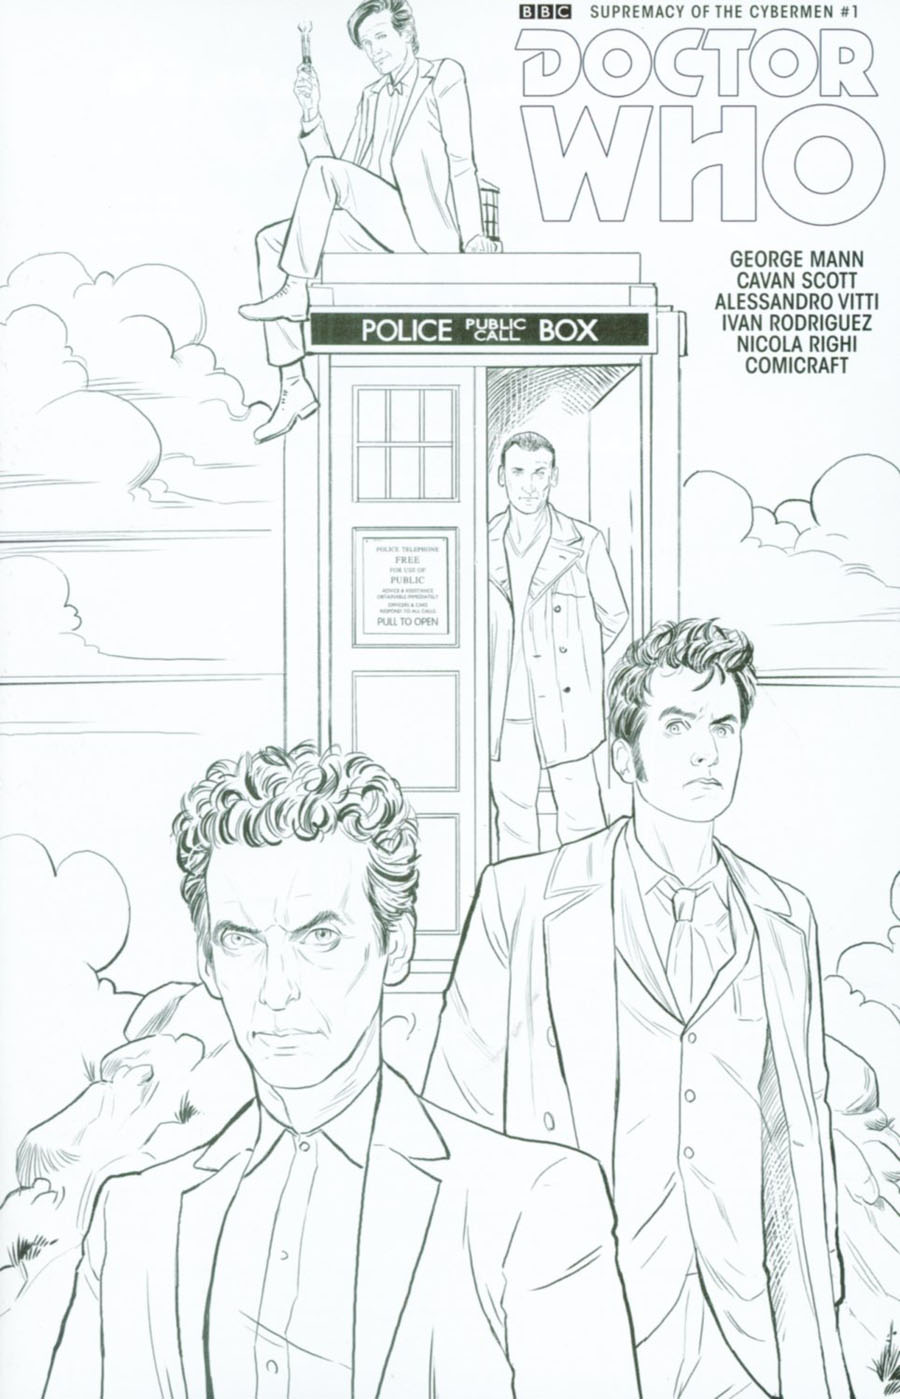 Doctor Who Event 2016 Supremacy Of The Cybermen #1 Cover D Variant Mariano Laclaustra Adult Coloring Book Cover